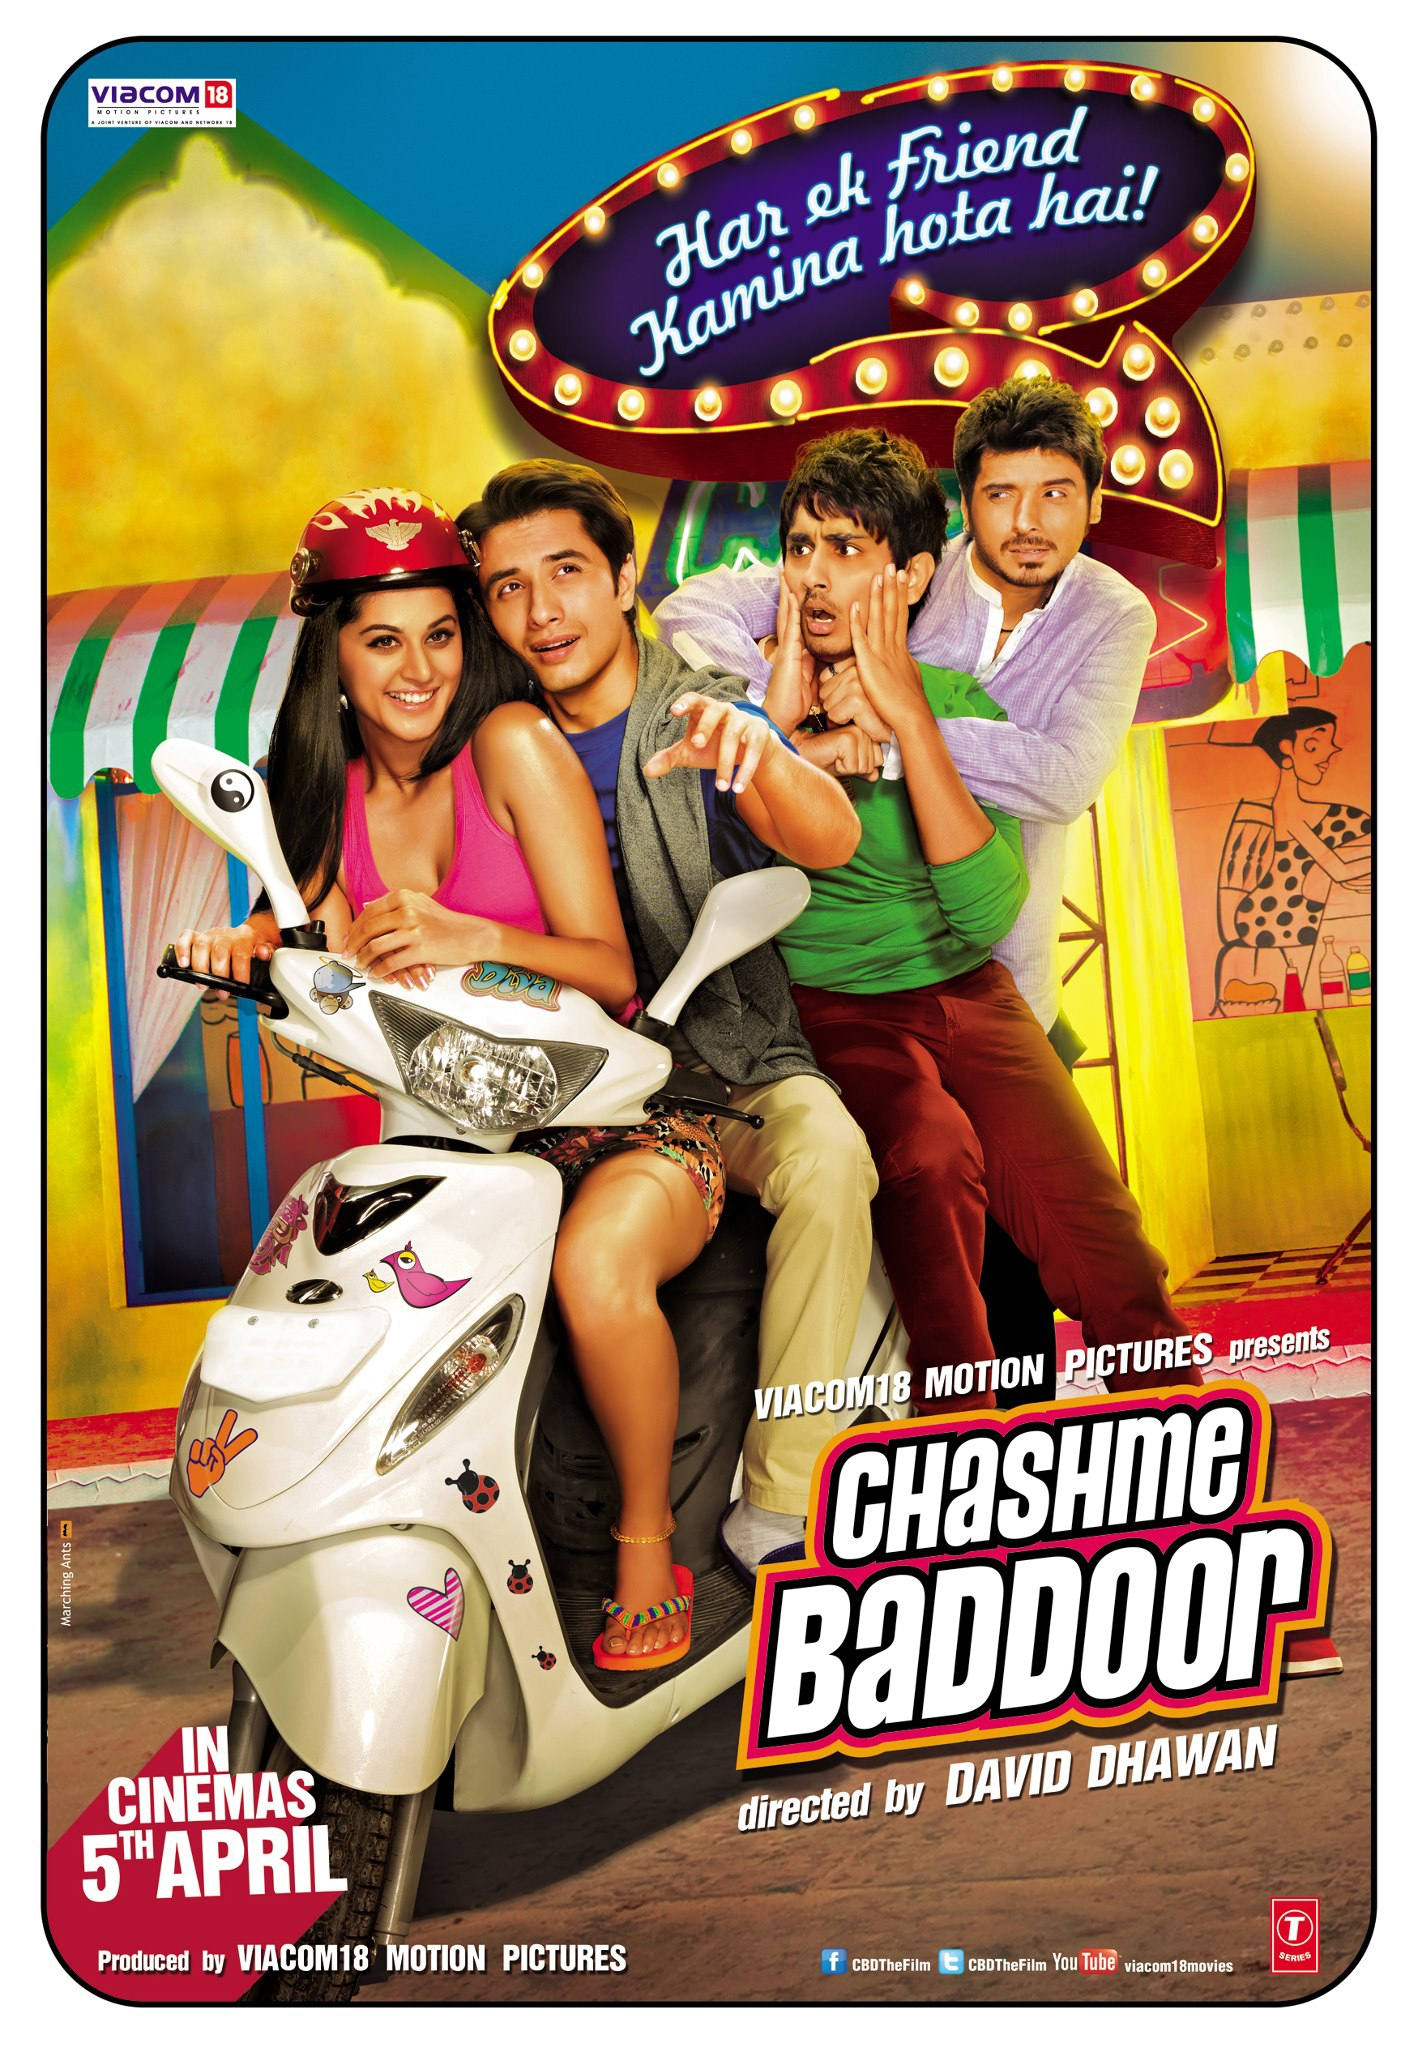 Chashme Baddoor - Movie Poster #1 (Original)